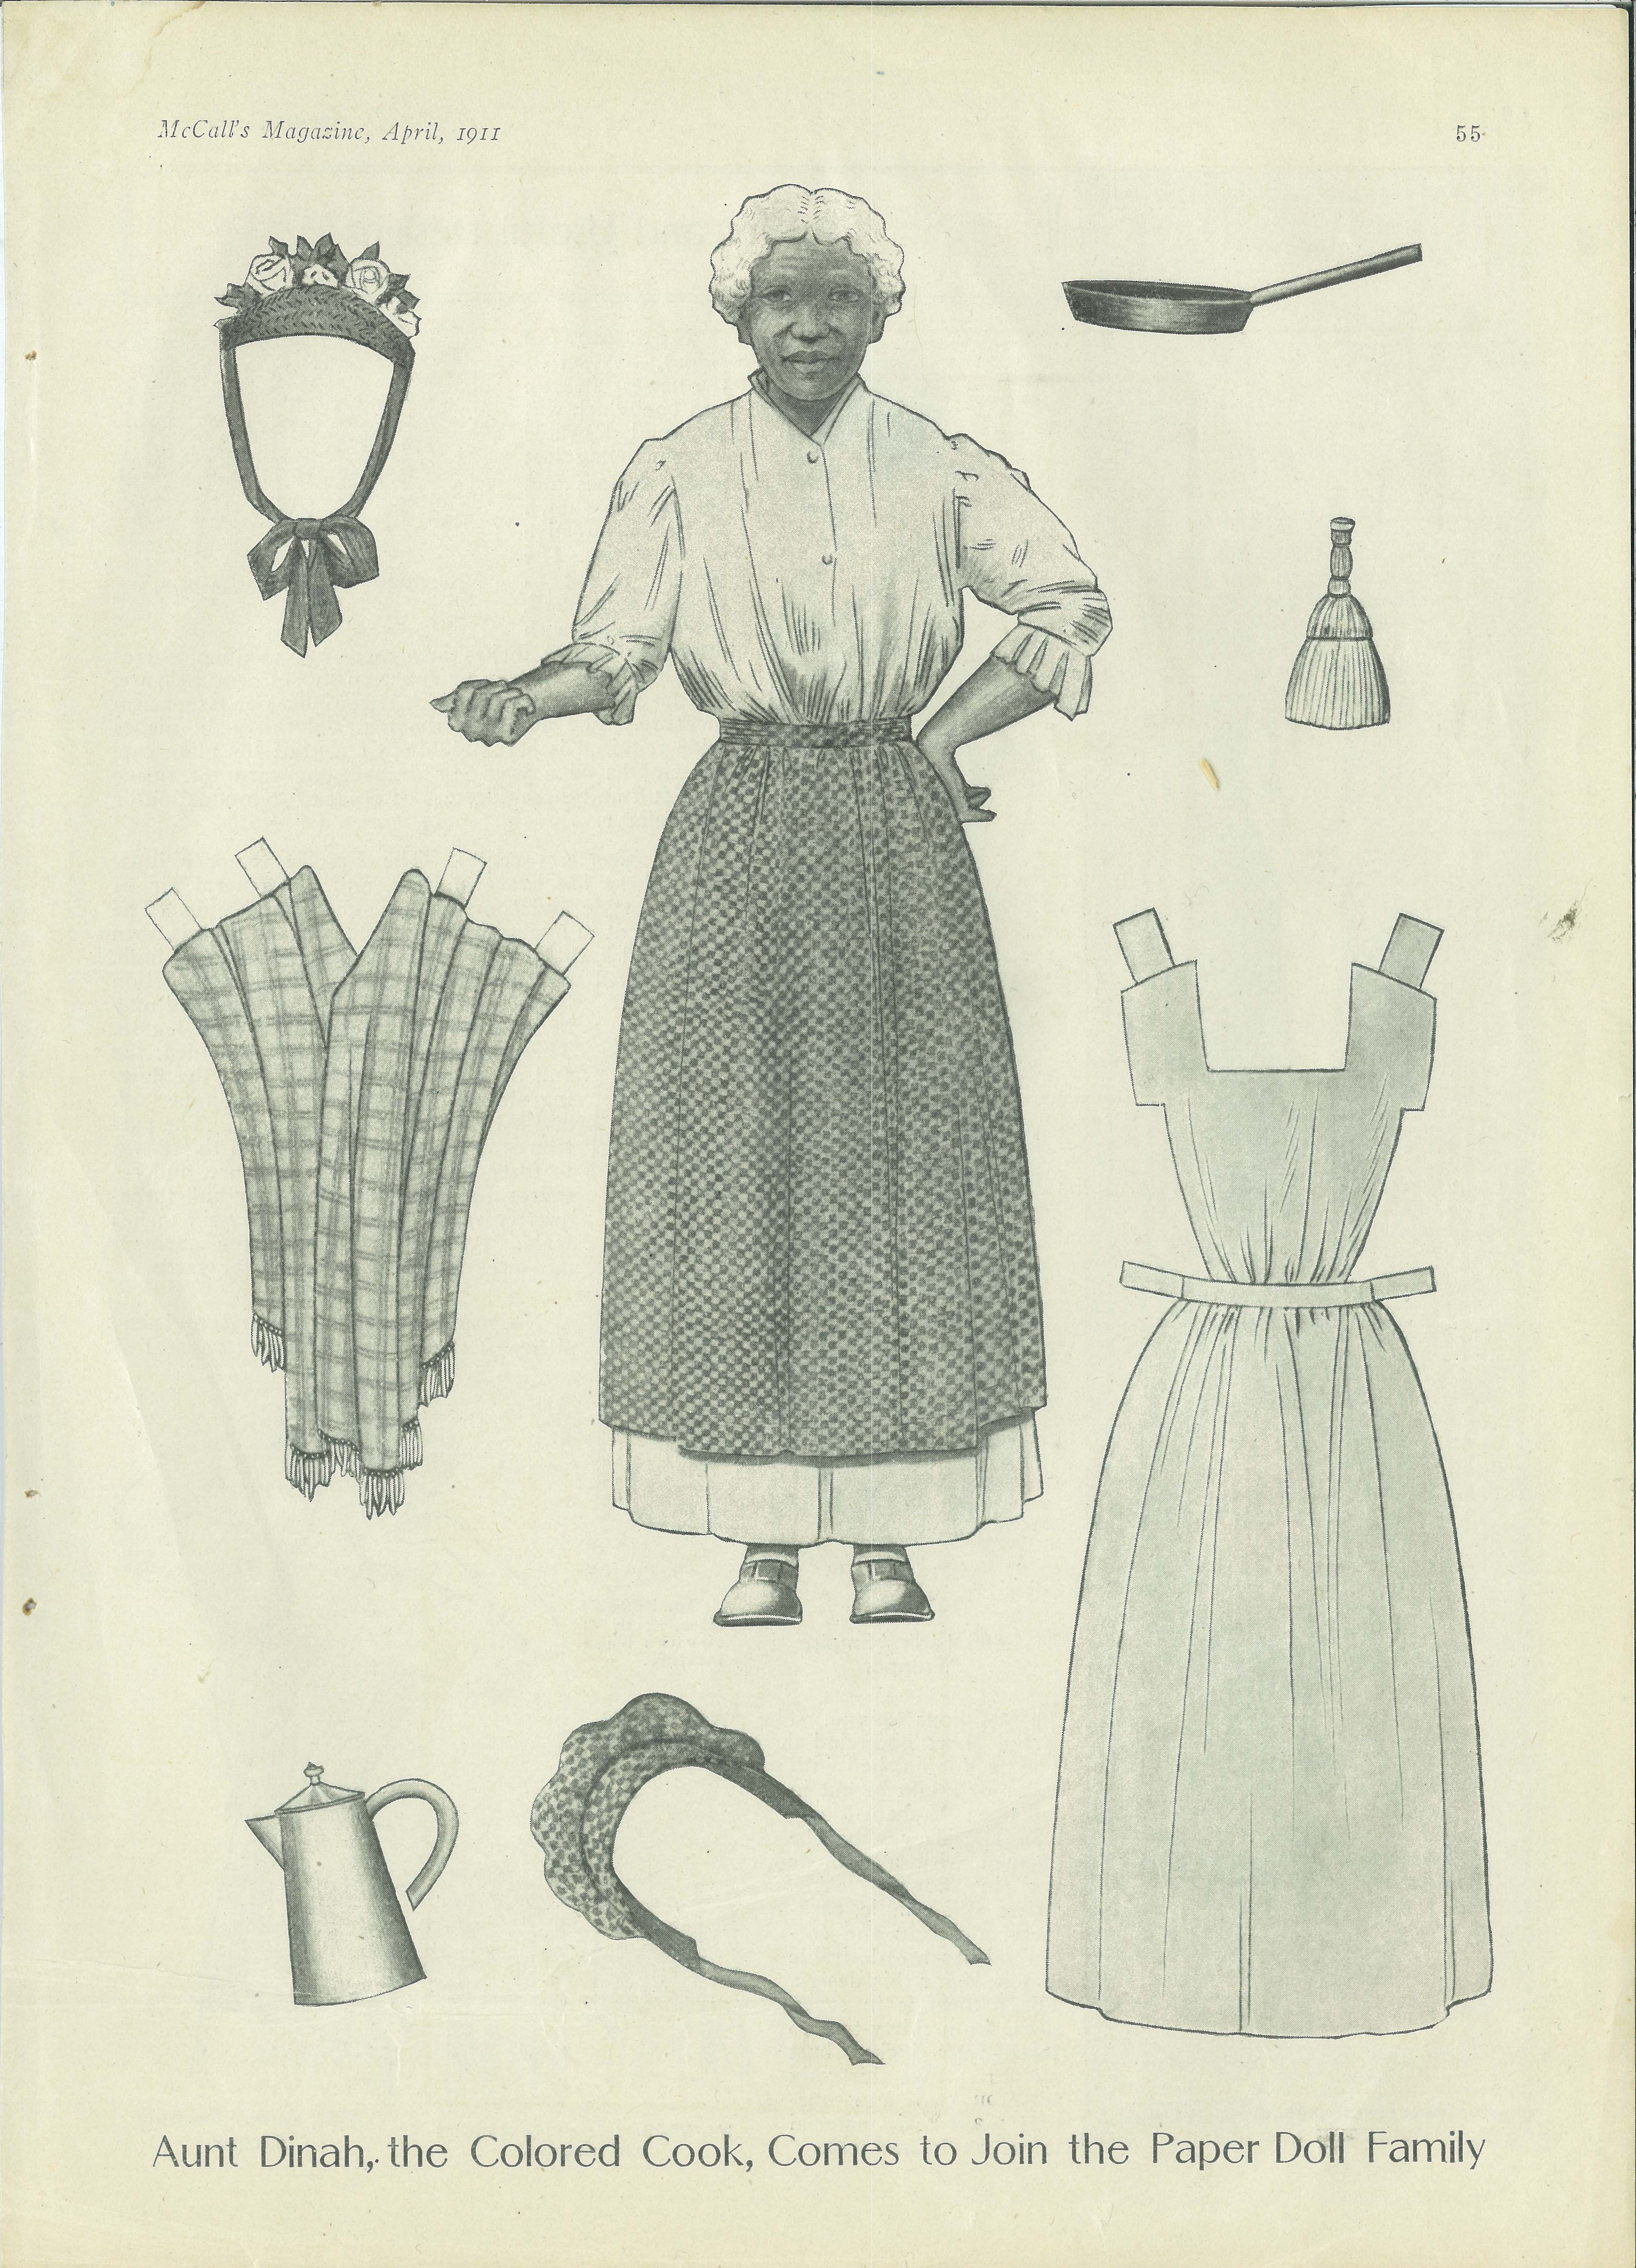 """""""Aunt Dinah, the Colored Cook, comes to join the Paper Doll Family""""_McCall's Magazine, April 1911_Aunt Dinah is presented in a realistic, straightforward manner, as all the dolls in this McCall's series were."""